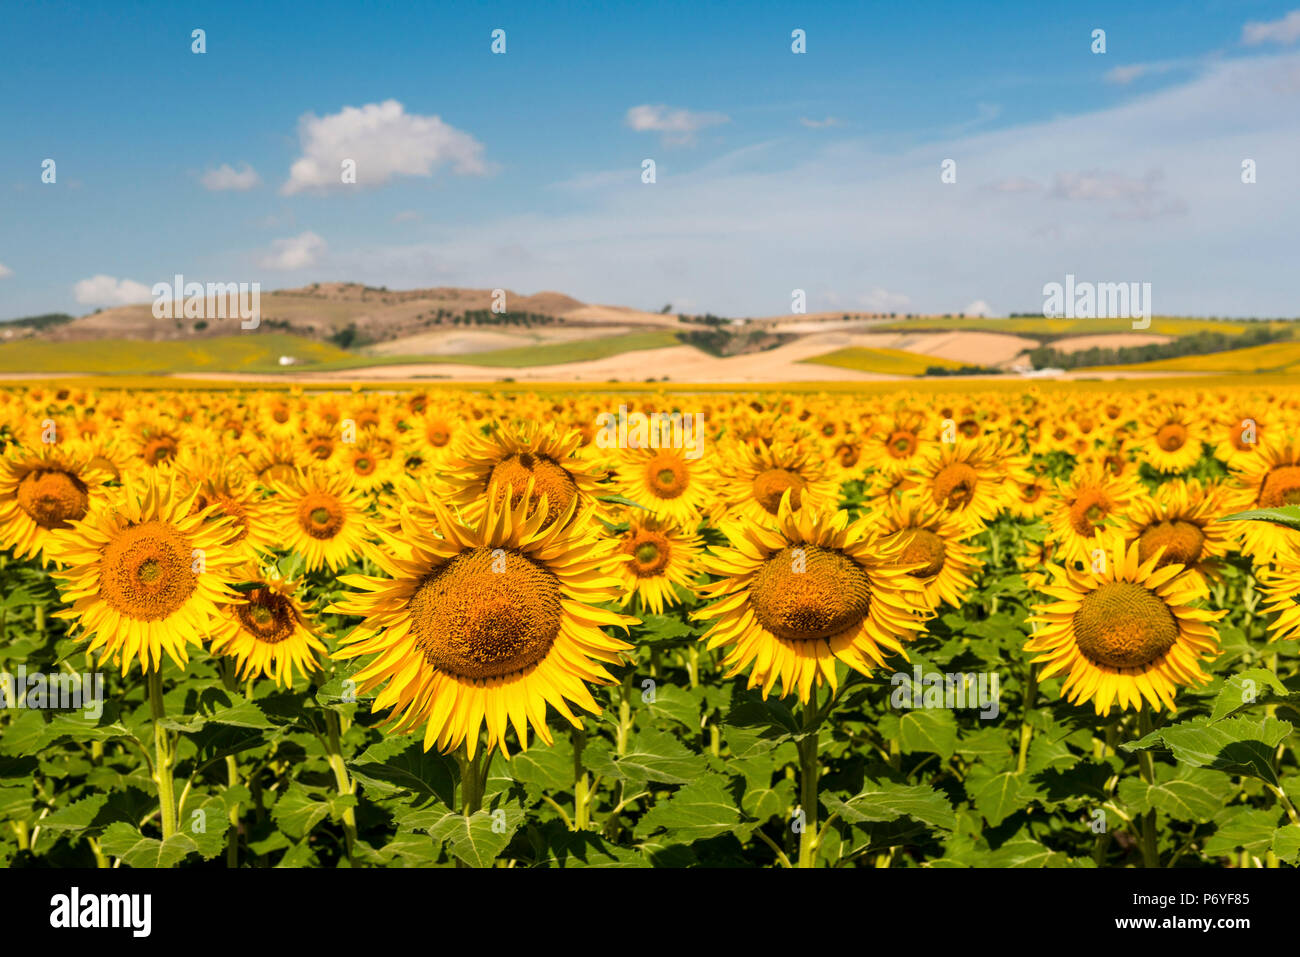 Spain, Andalusia, Seville. Sunflower fields outside of Seville - Stock Image